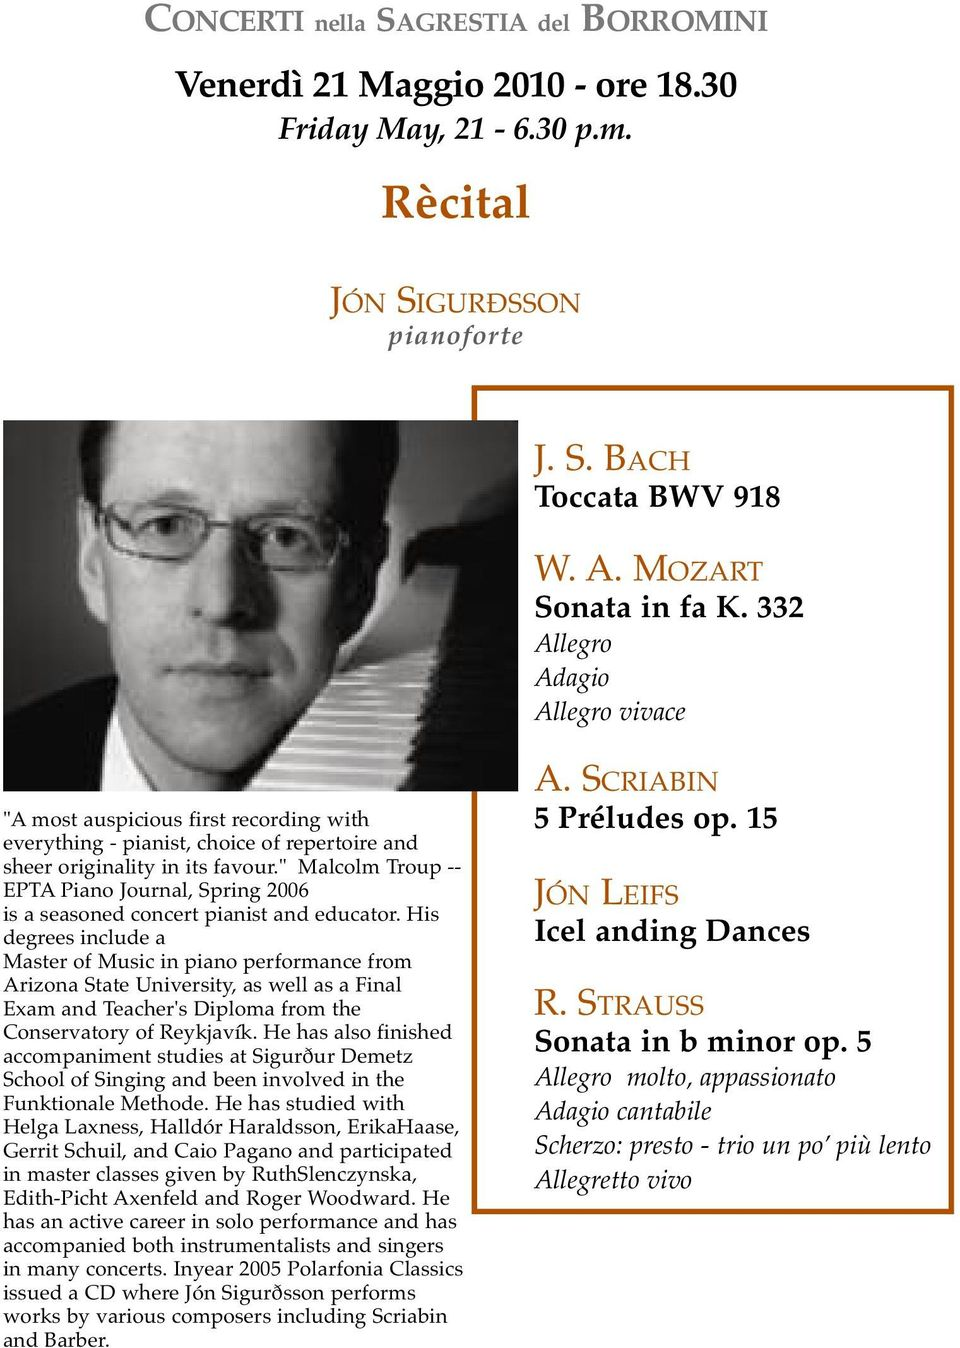 """ Malcolm Troup -- EPTA Piano Journal, Spring 2006 is a seasoned concert pianist and educator."